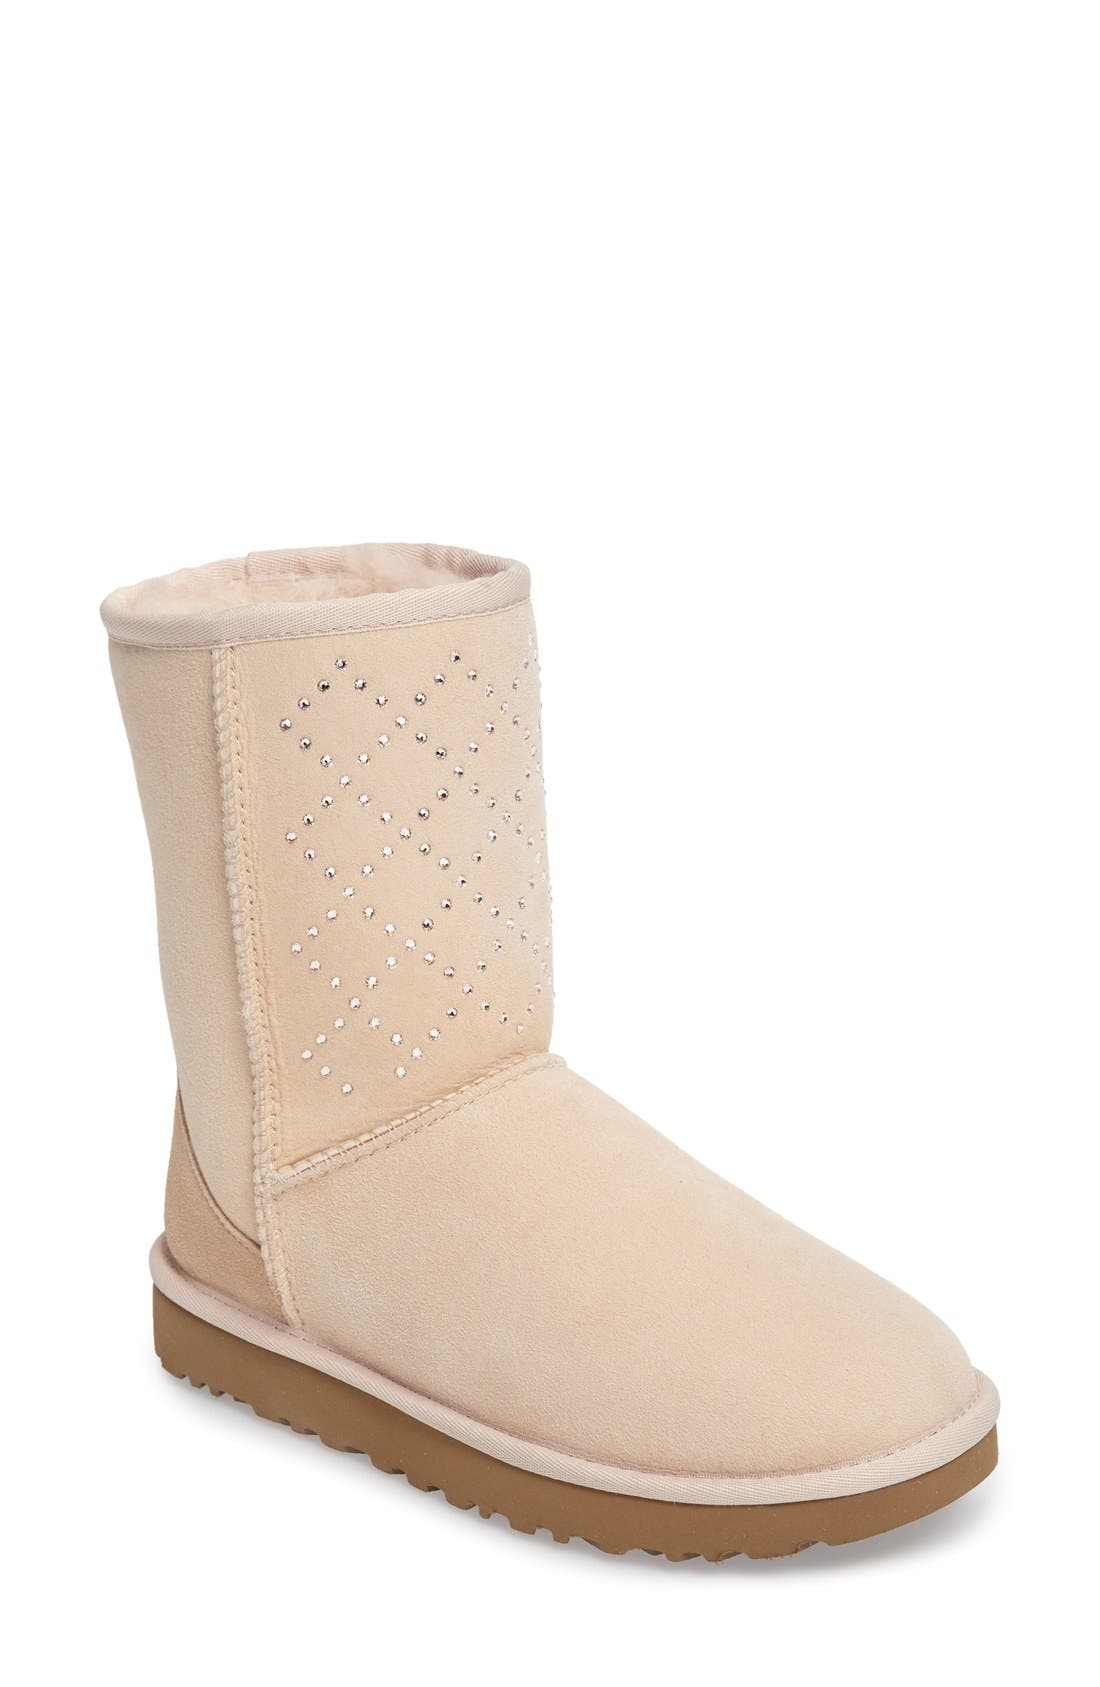 Main Image - UGG® Classic Short - Crystal Genuine Shearling Lined Boot (Women)